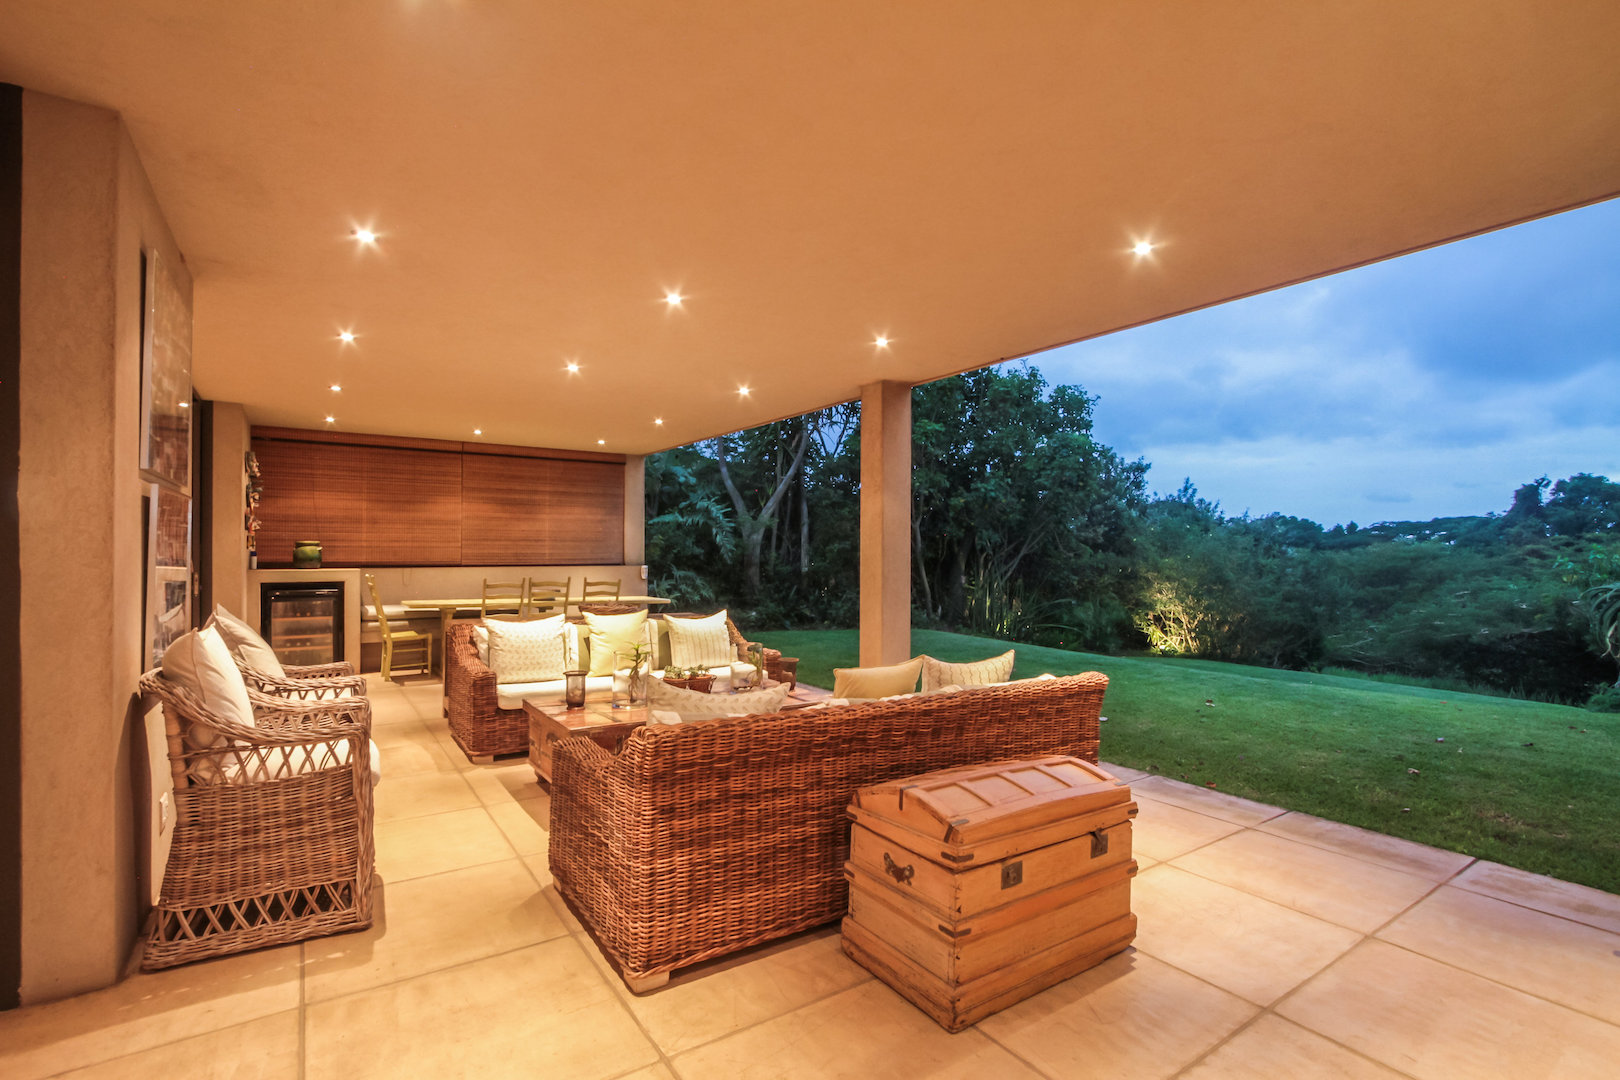 3 BedroomHouse For Sale In Umhlanga Rocks